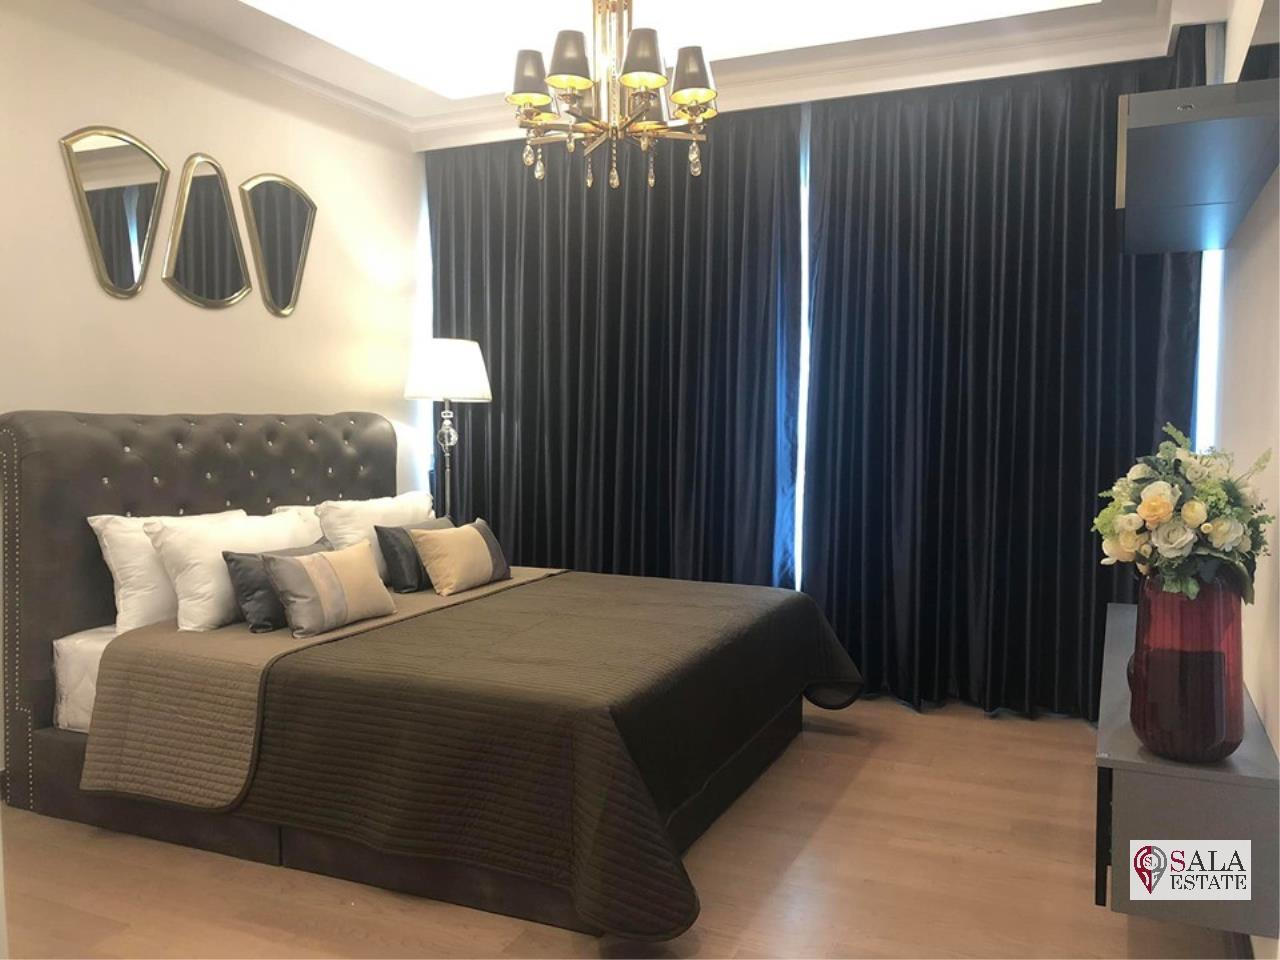 SALA ESTATE Agency's (FOR RENT) SUPALAI ELITE PHAYATHAI – BTS PHAYA THAI,70 SQM 1 BEDROOM 1 BATHROOM, FULLY FERNISHED, CITY VIEW 10